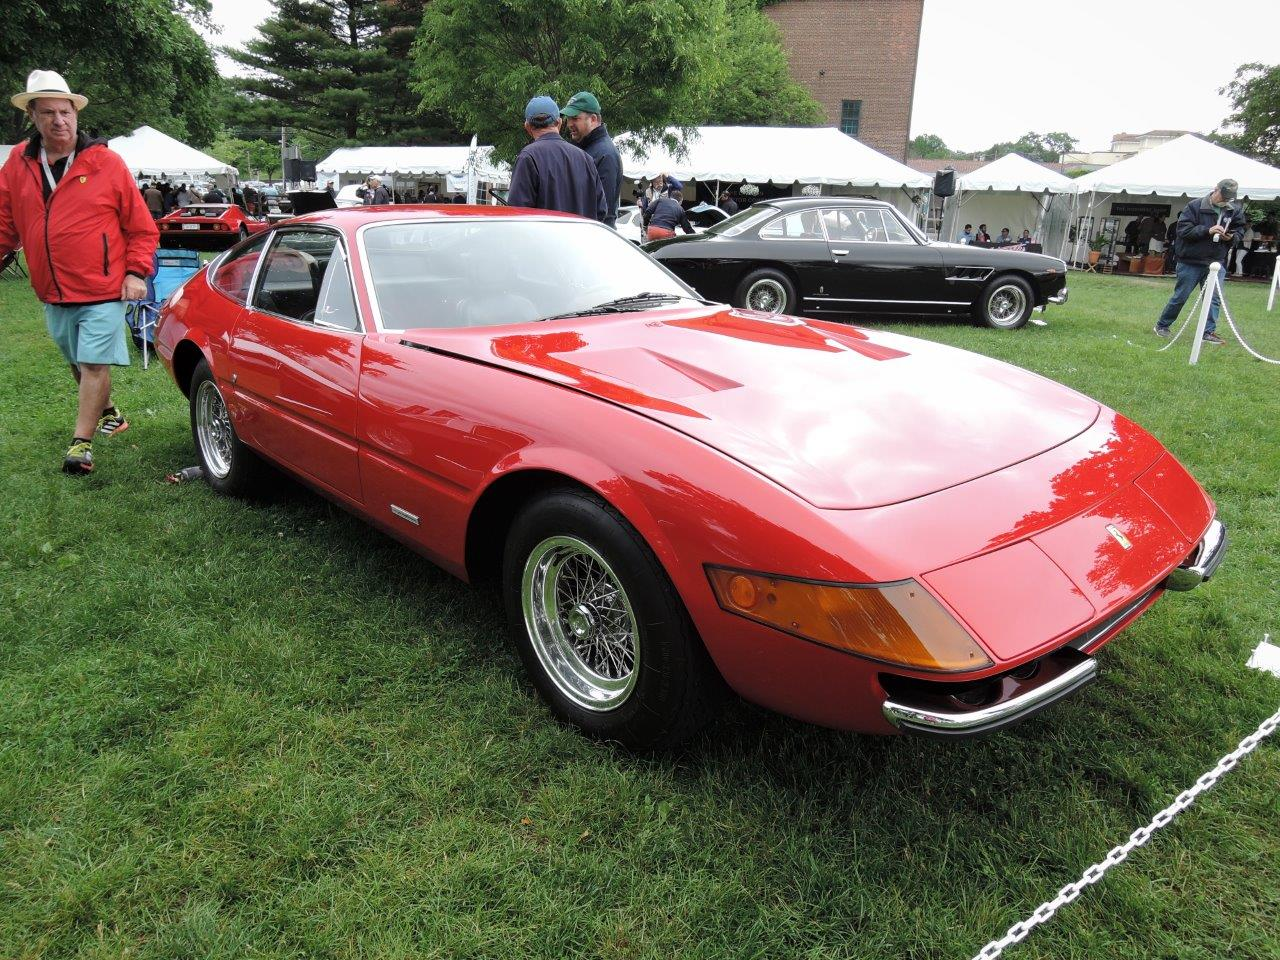 red 1972 Ferrari 365 GTB/4 Daytona - 2018 Greenwich Concours International